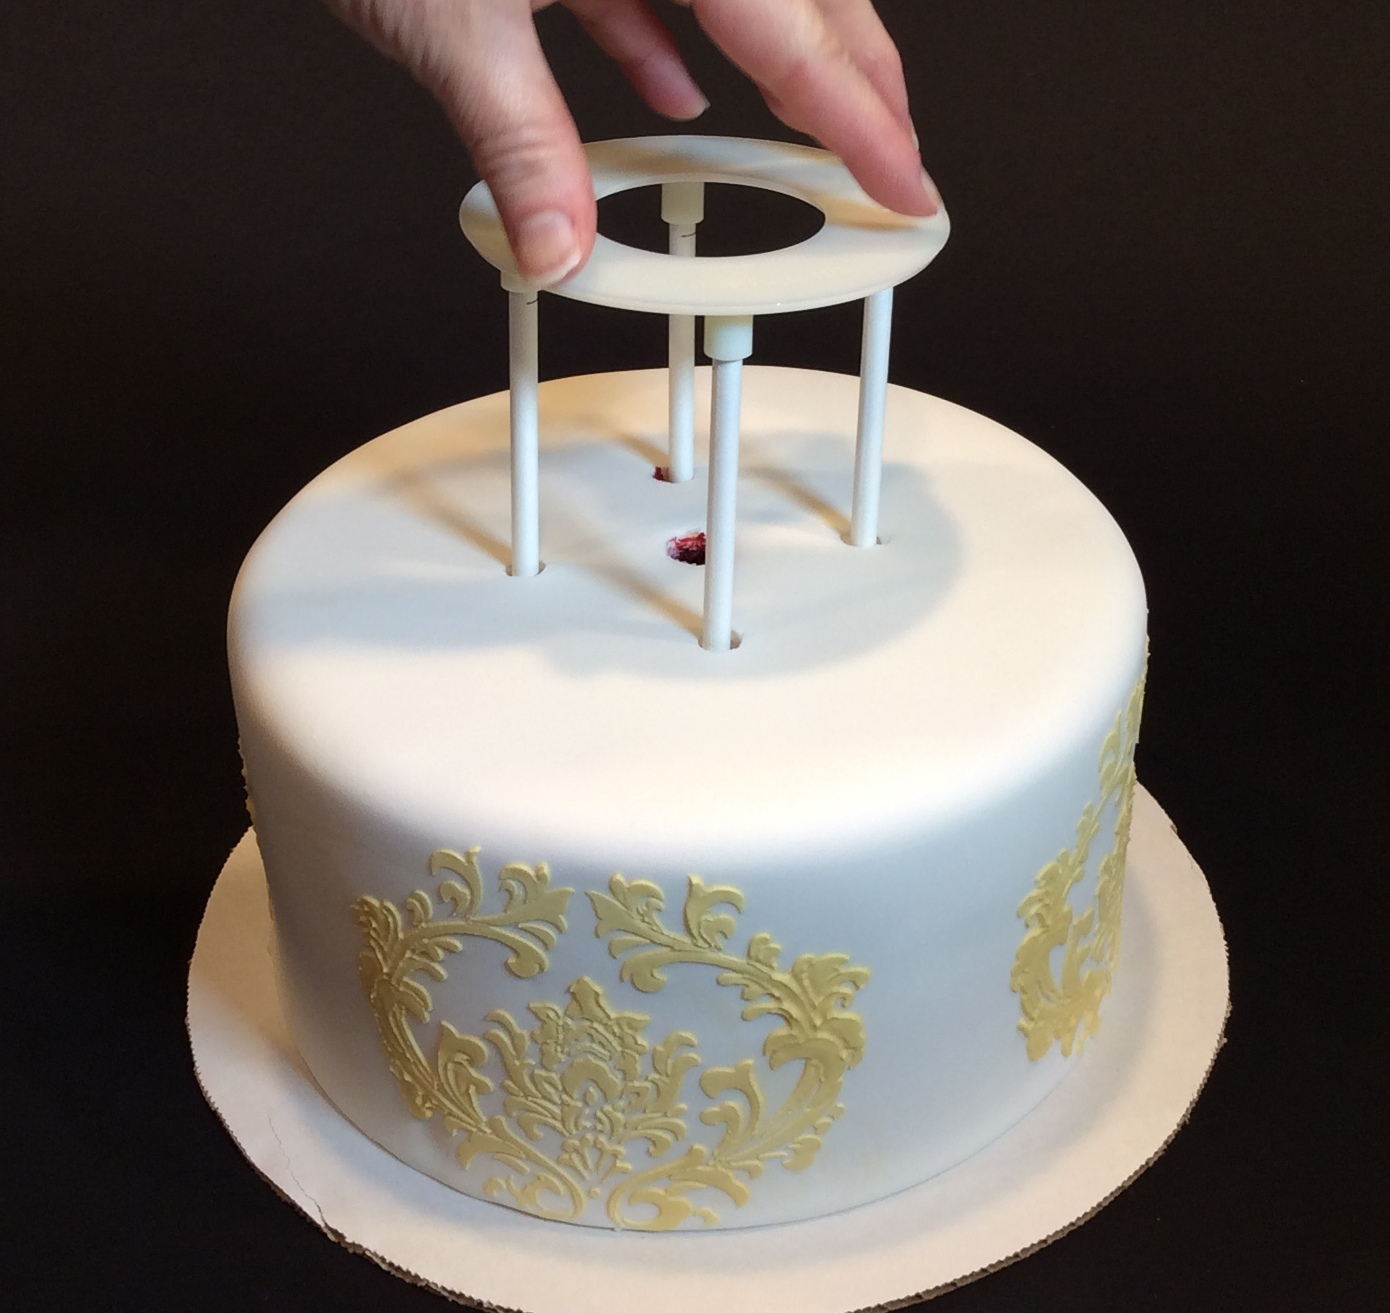 Watch How to Bake a Ring Into a Cake or Other Food video